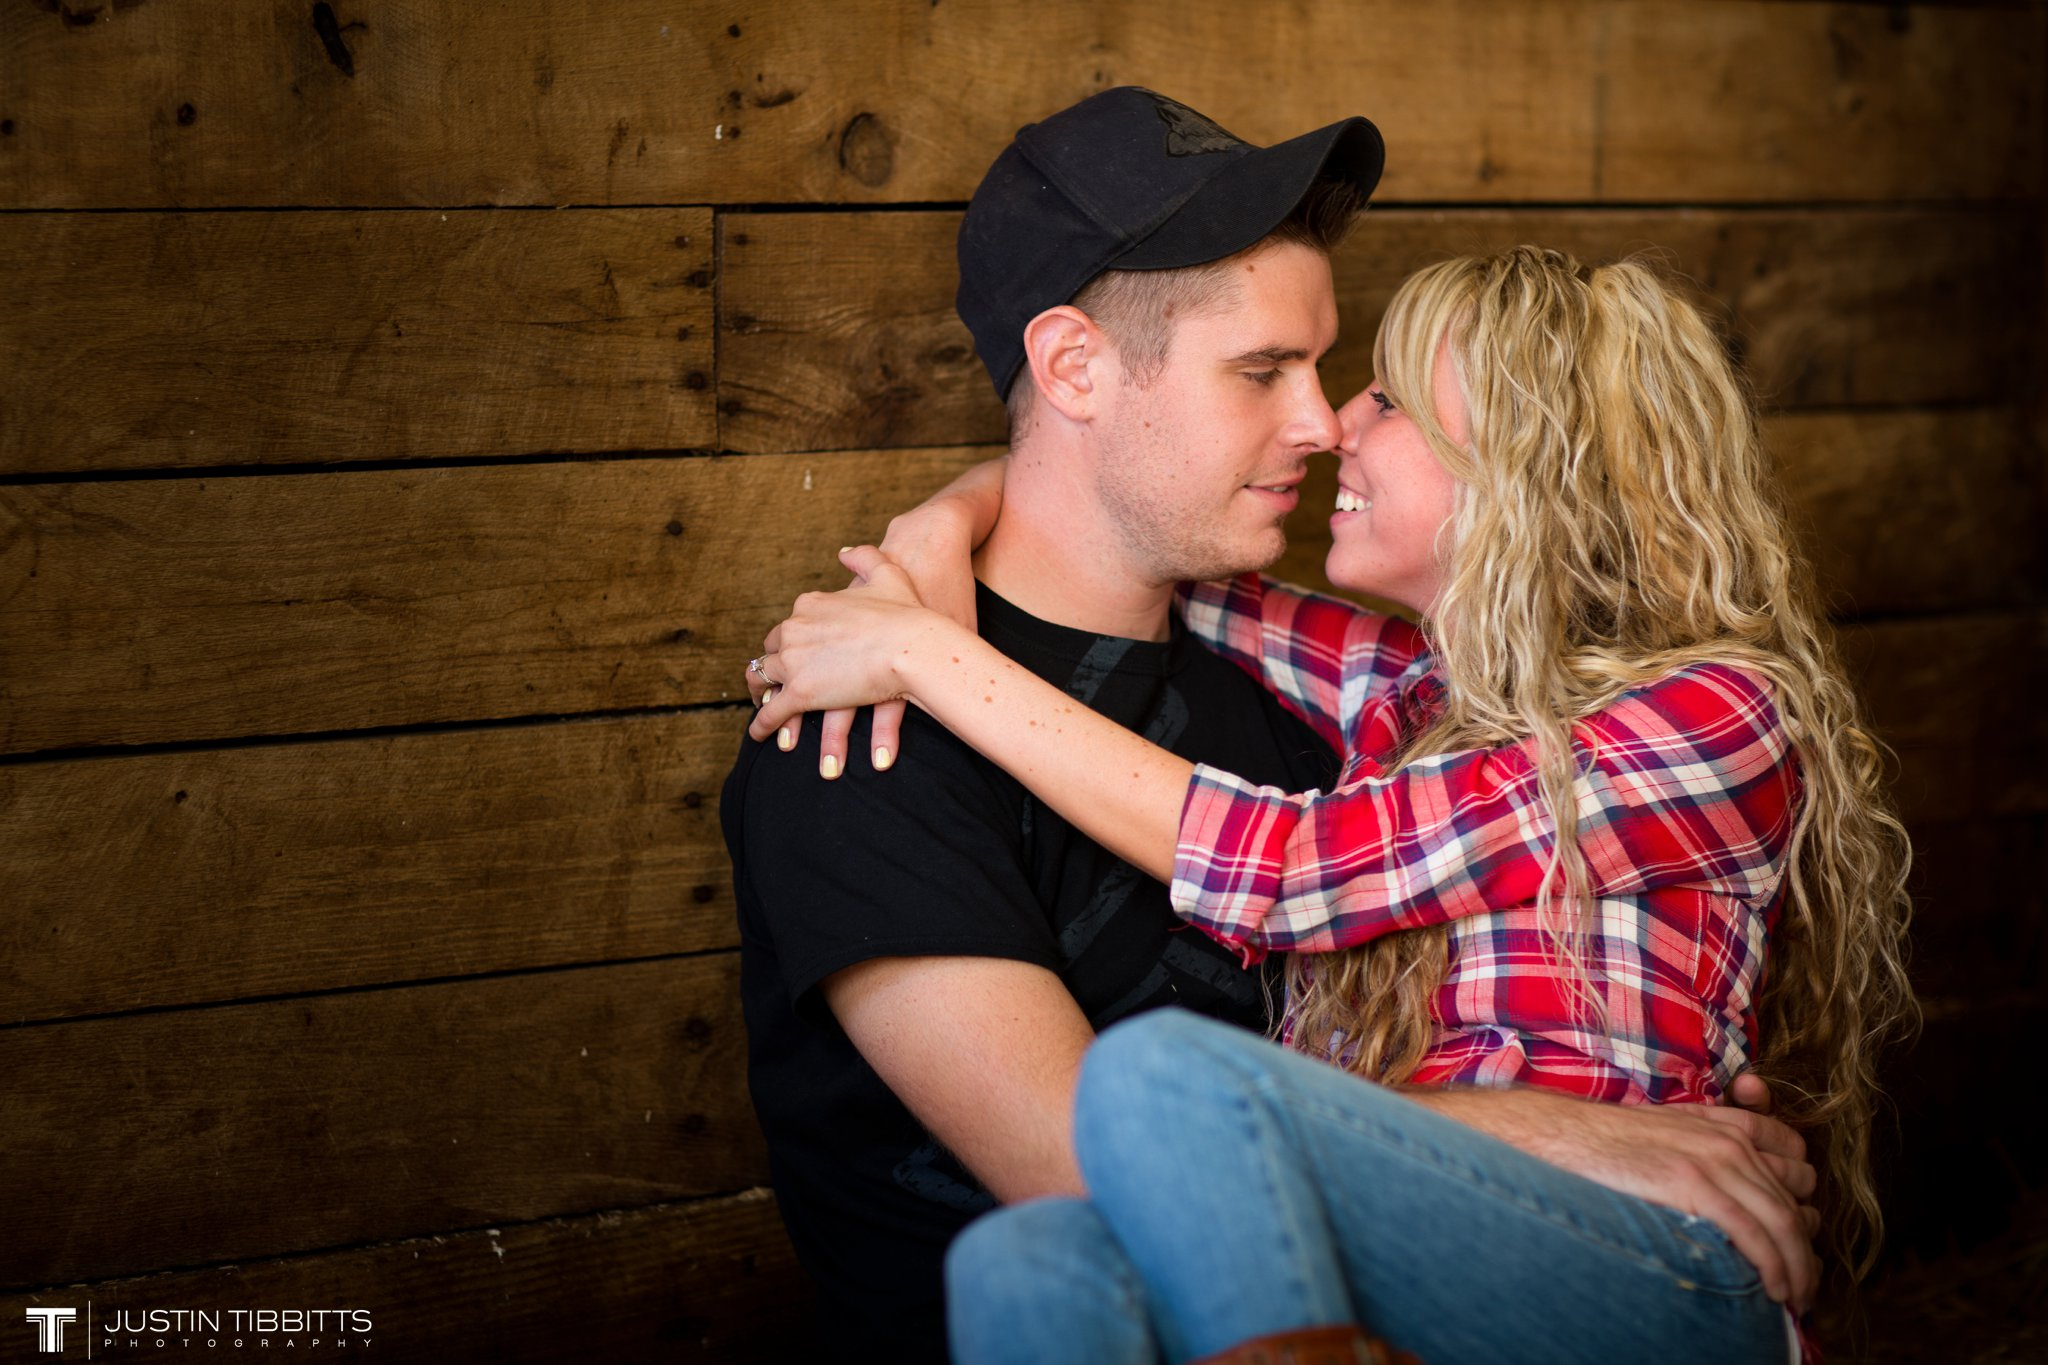 Justin Tibbitts Photography Tim and Taylor's Chatham New York Engagement Photo Shoot Albany Wedding Photography_0005